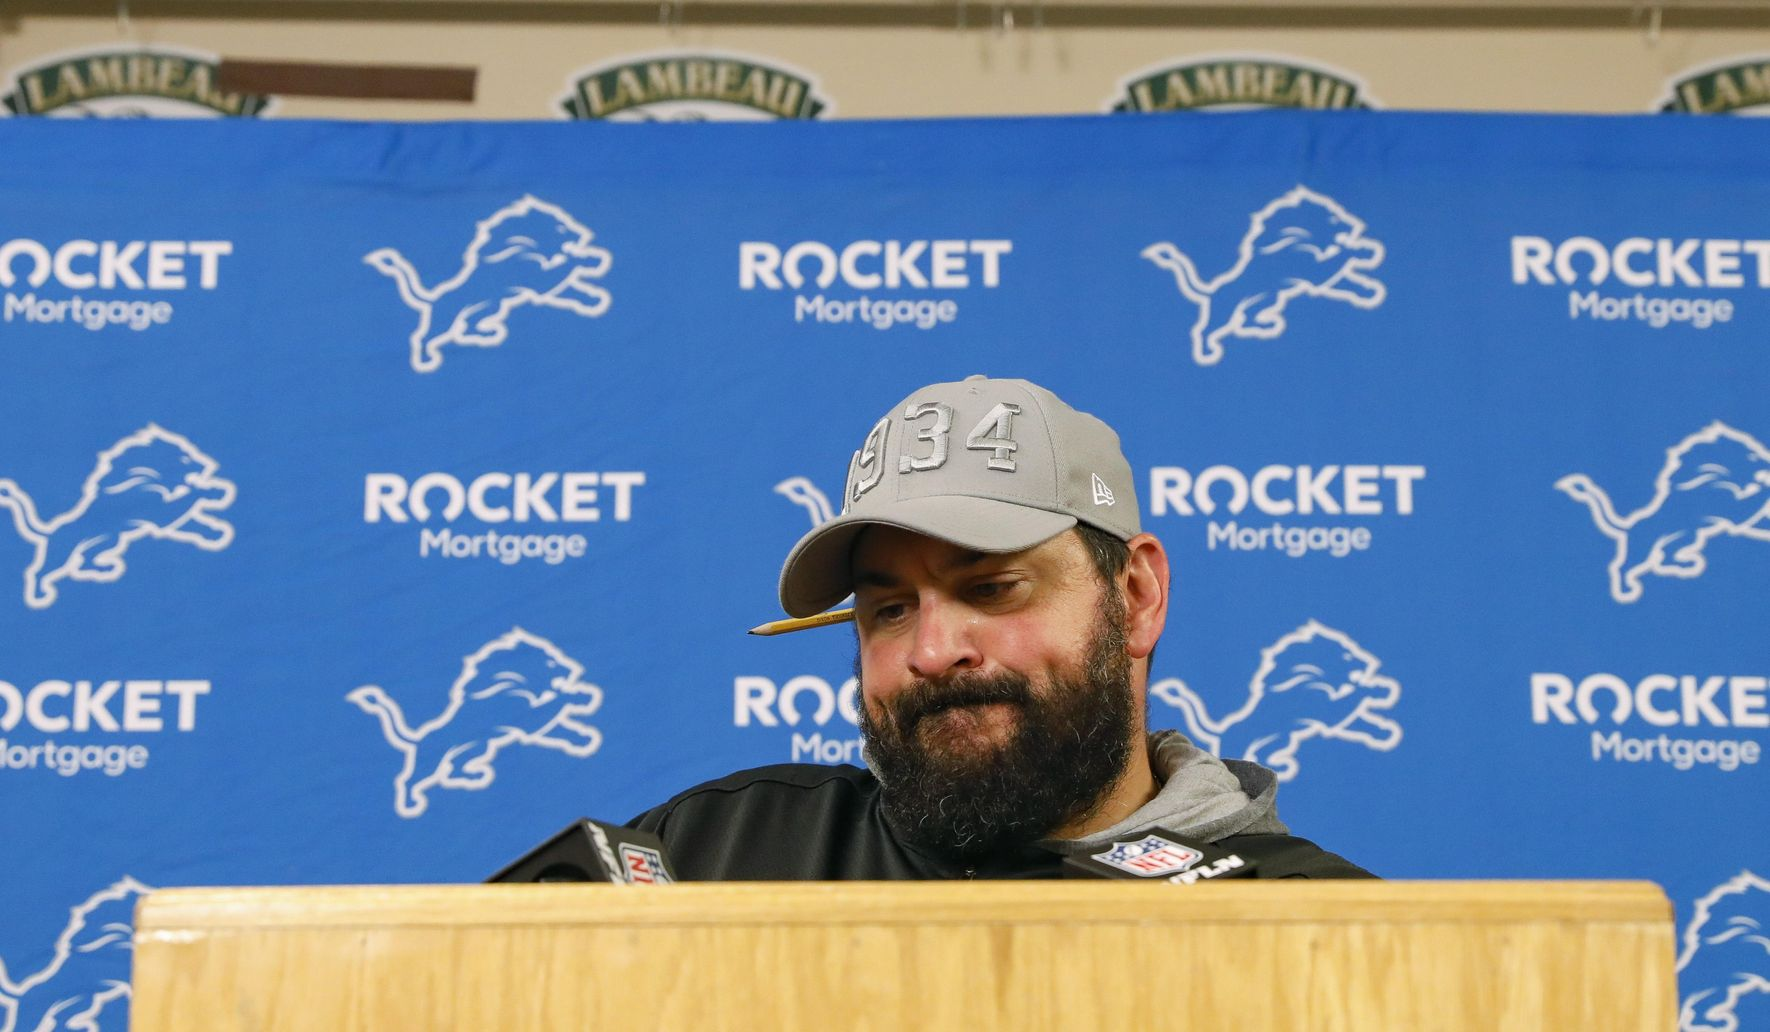 Lions_packers_football_50570_c0-196-4685-2927_s1770x1032